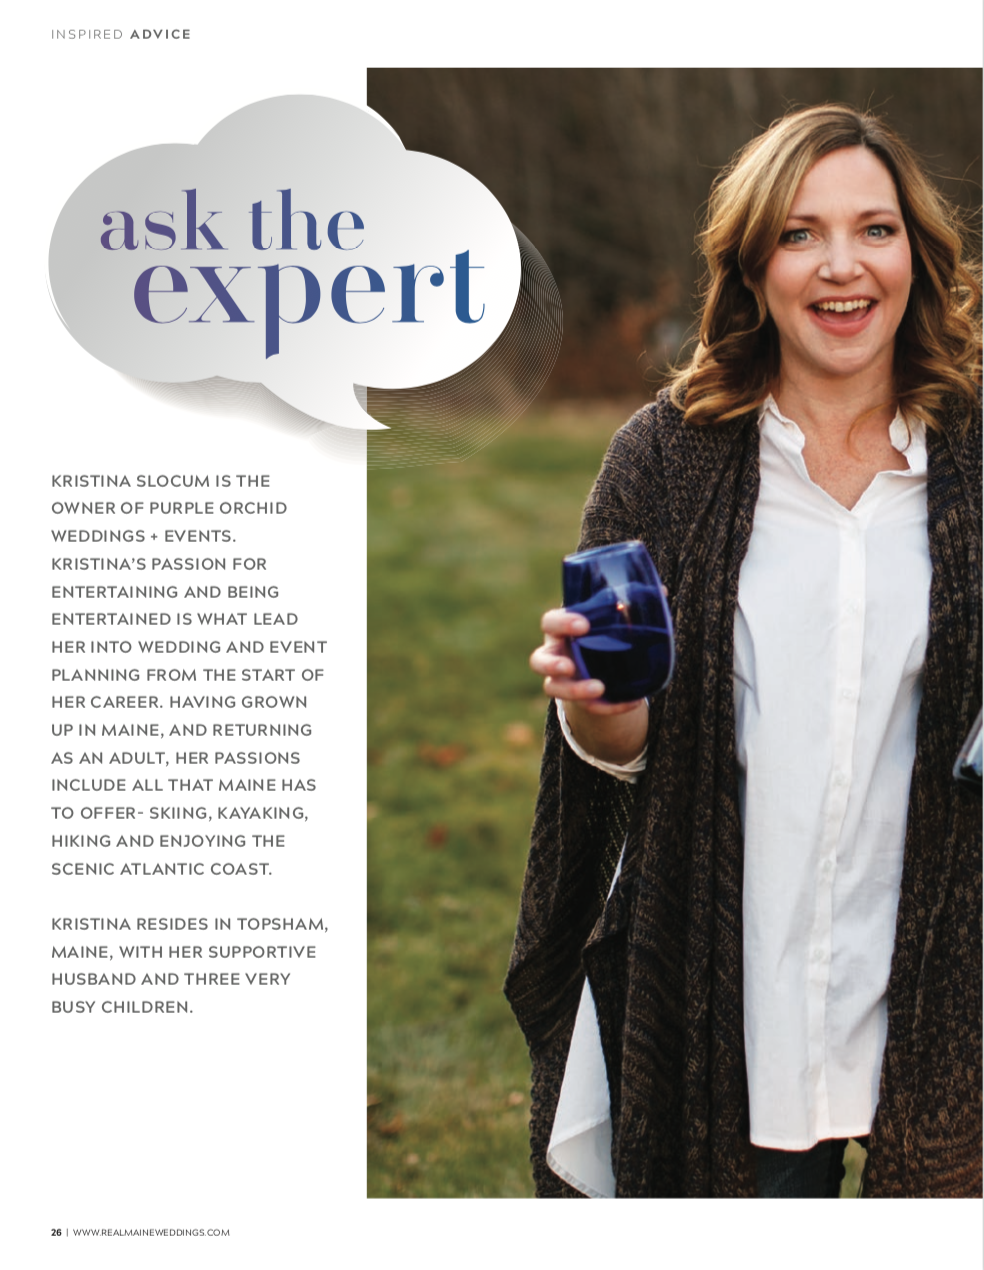 Behind the Scenes of Ask the Expert